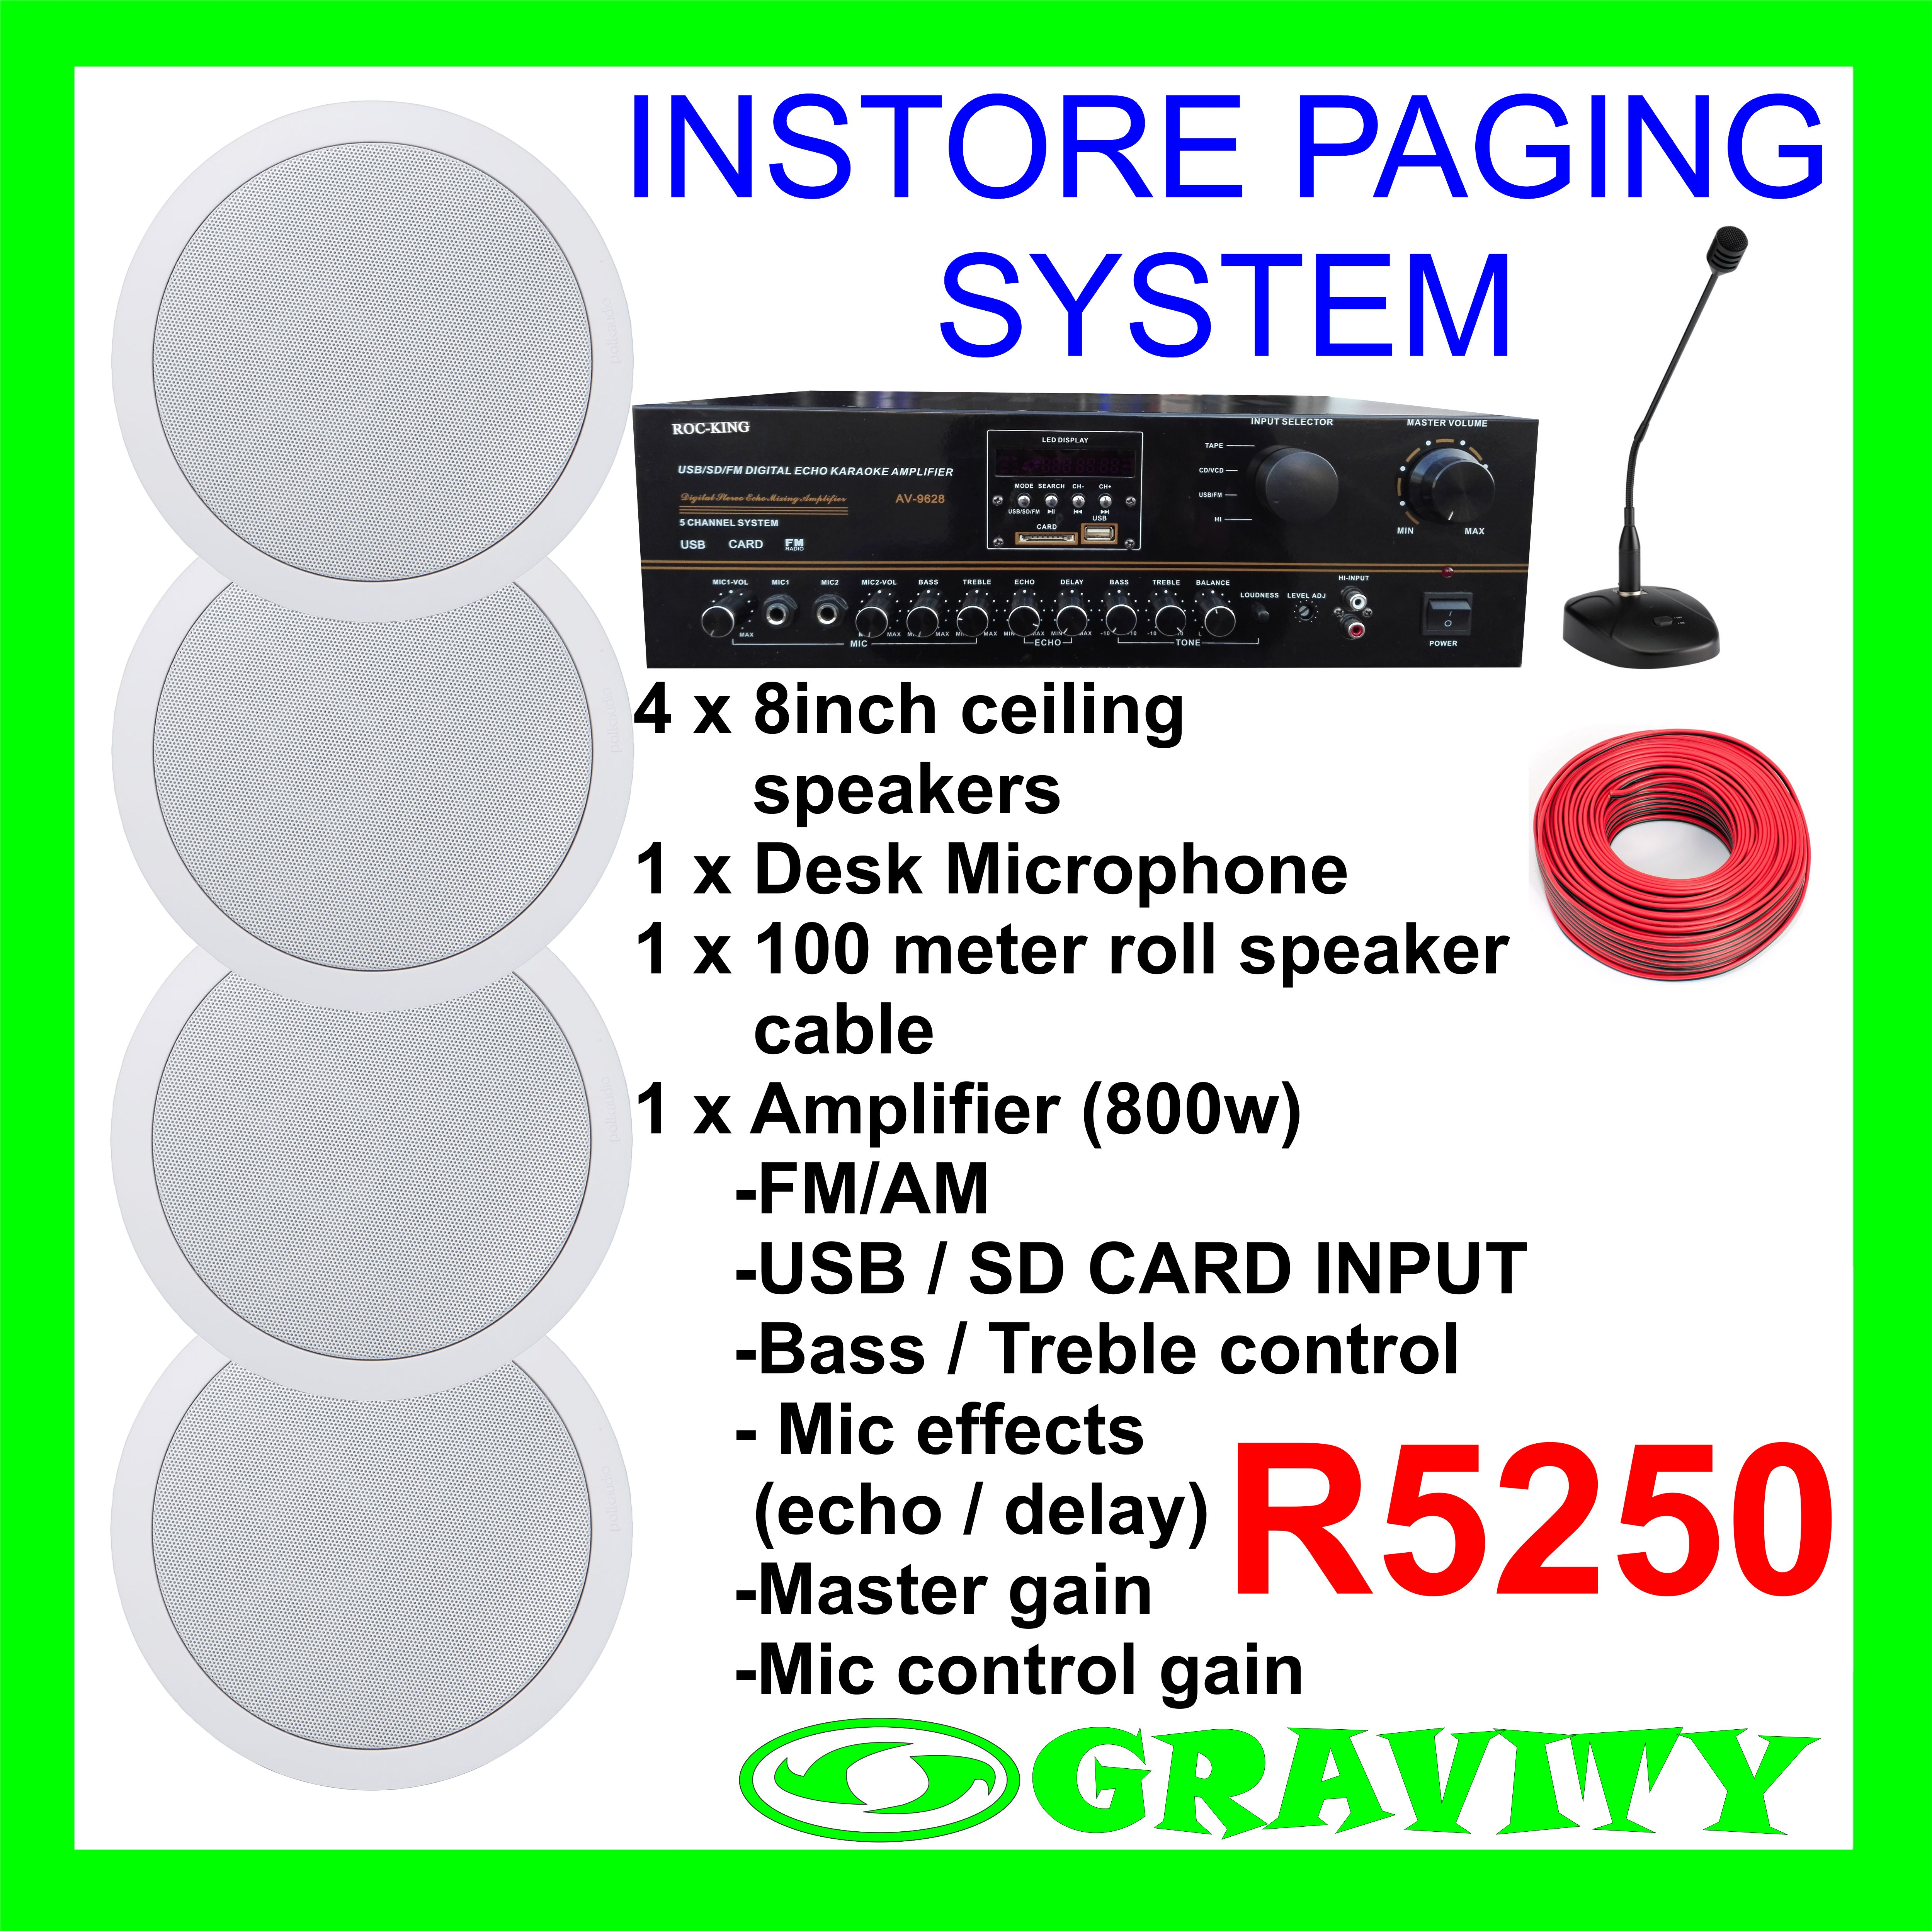 INSTORE PAGING SYSTEM COMBO  INSTORE COMMUNICATION SYSTEM IN STORE MUSIC SYSTEM IN STORE INTERCOM SYSTEM NOW AVAILABLE AT GRAVITY SOUND AND LIGHTING WAREHOUSE 0315072463